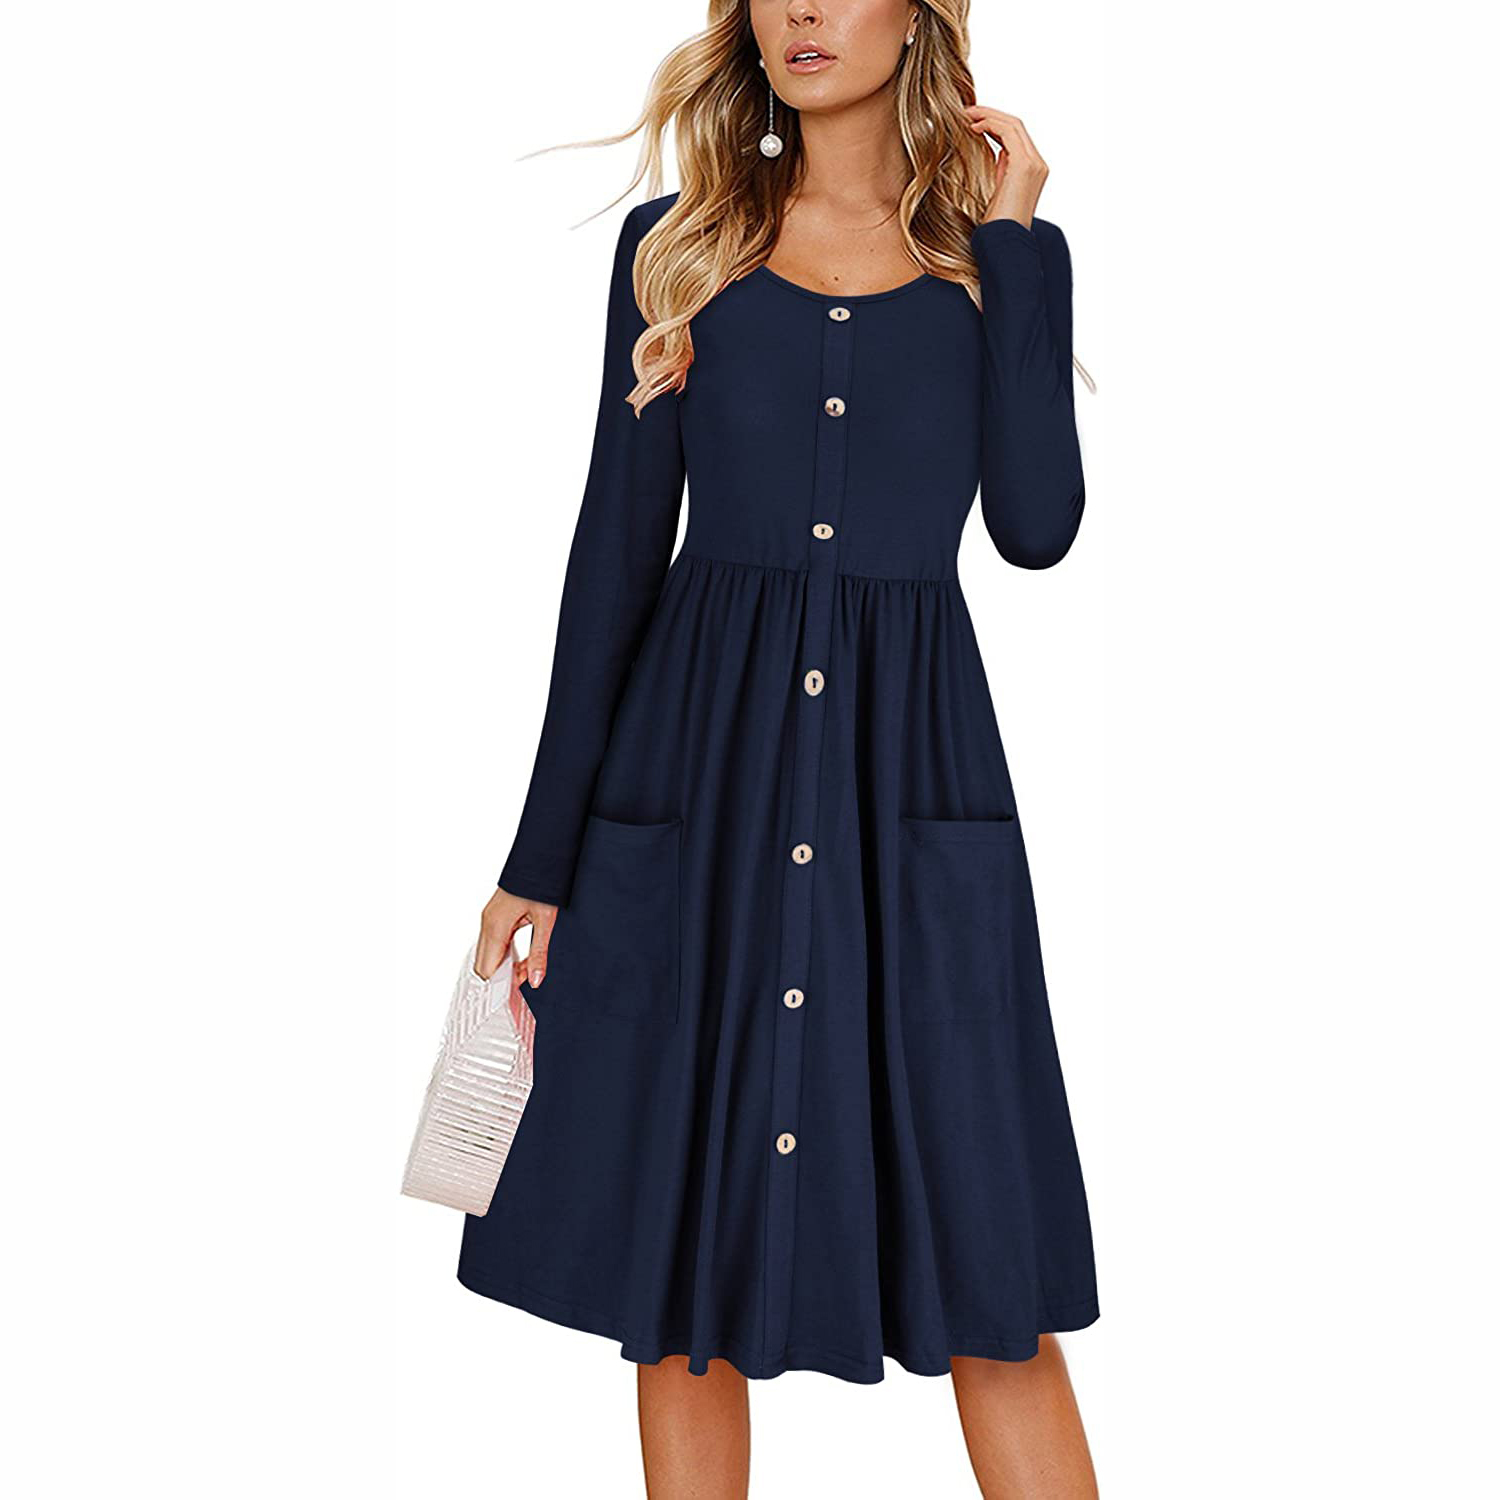 Kilig Women's Button-Down Midi Dress with Pockets